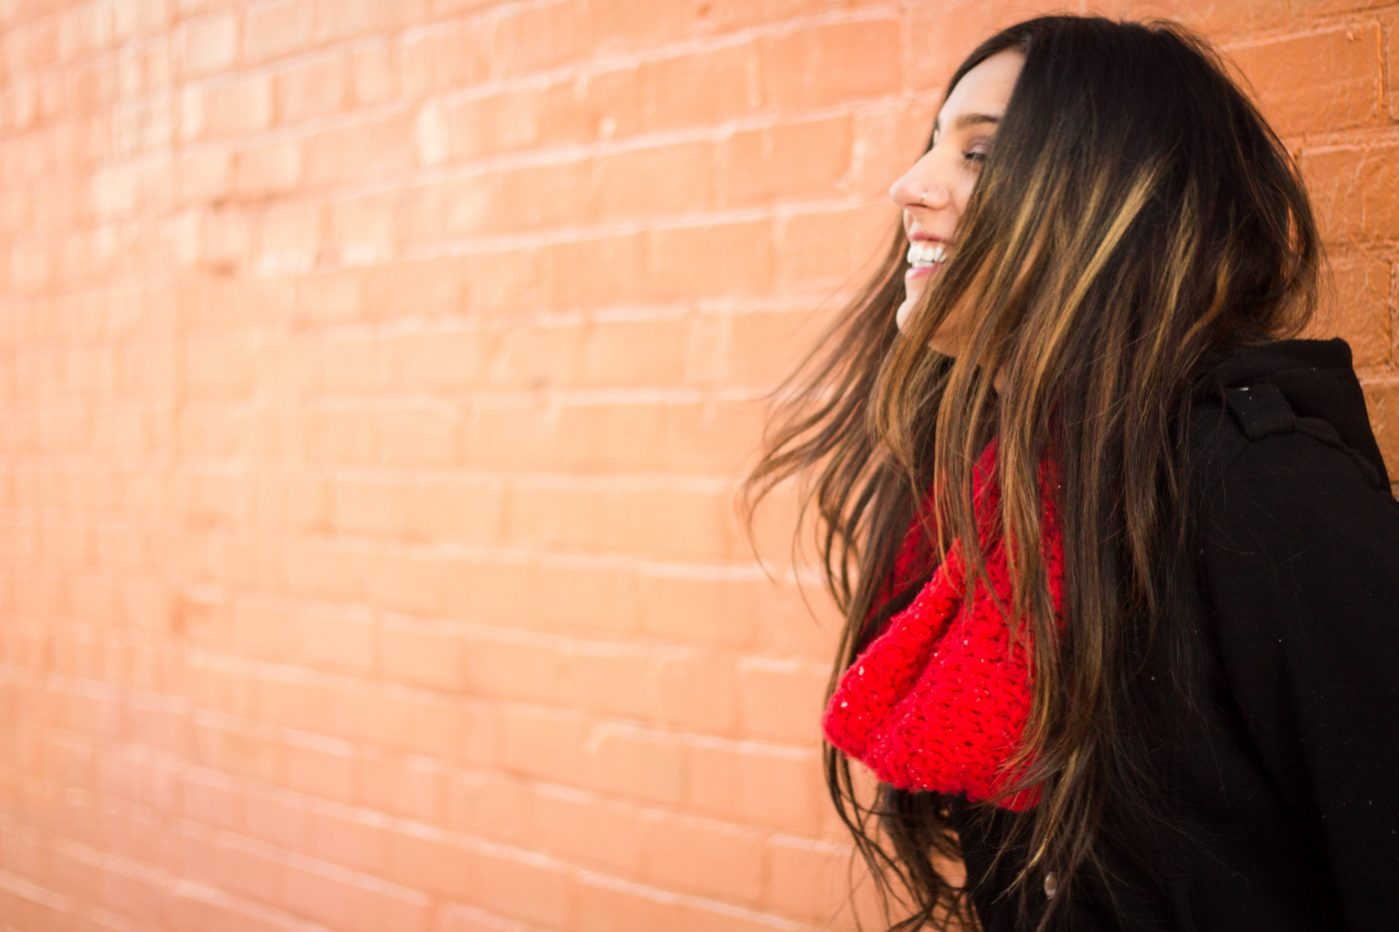 Girl laughing, wearing black coat and red scarf.